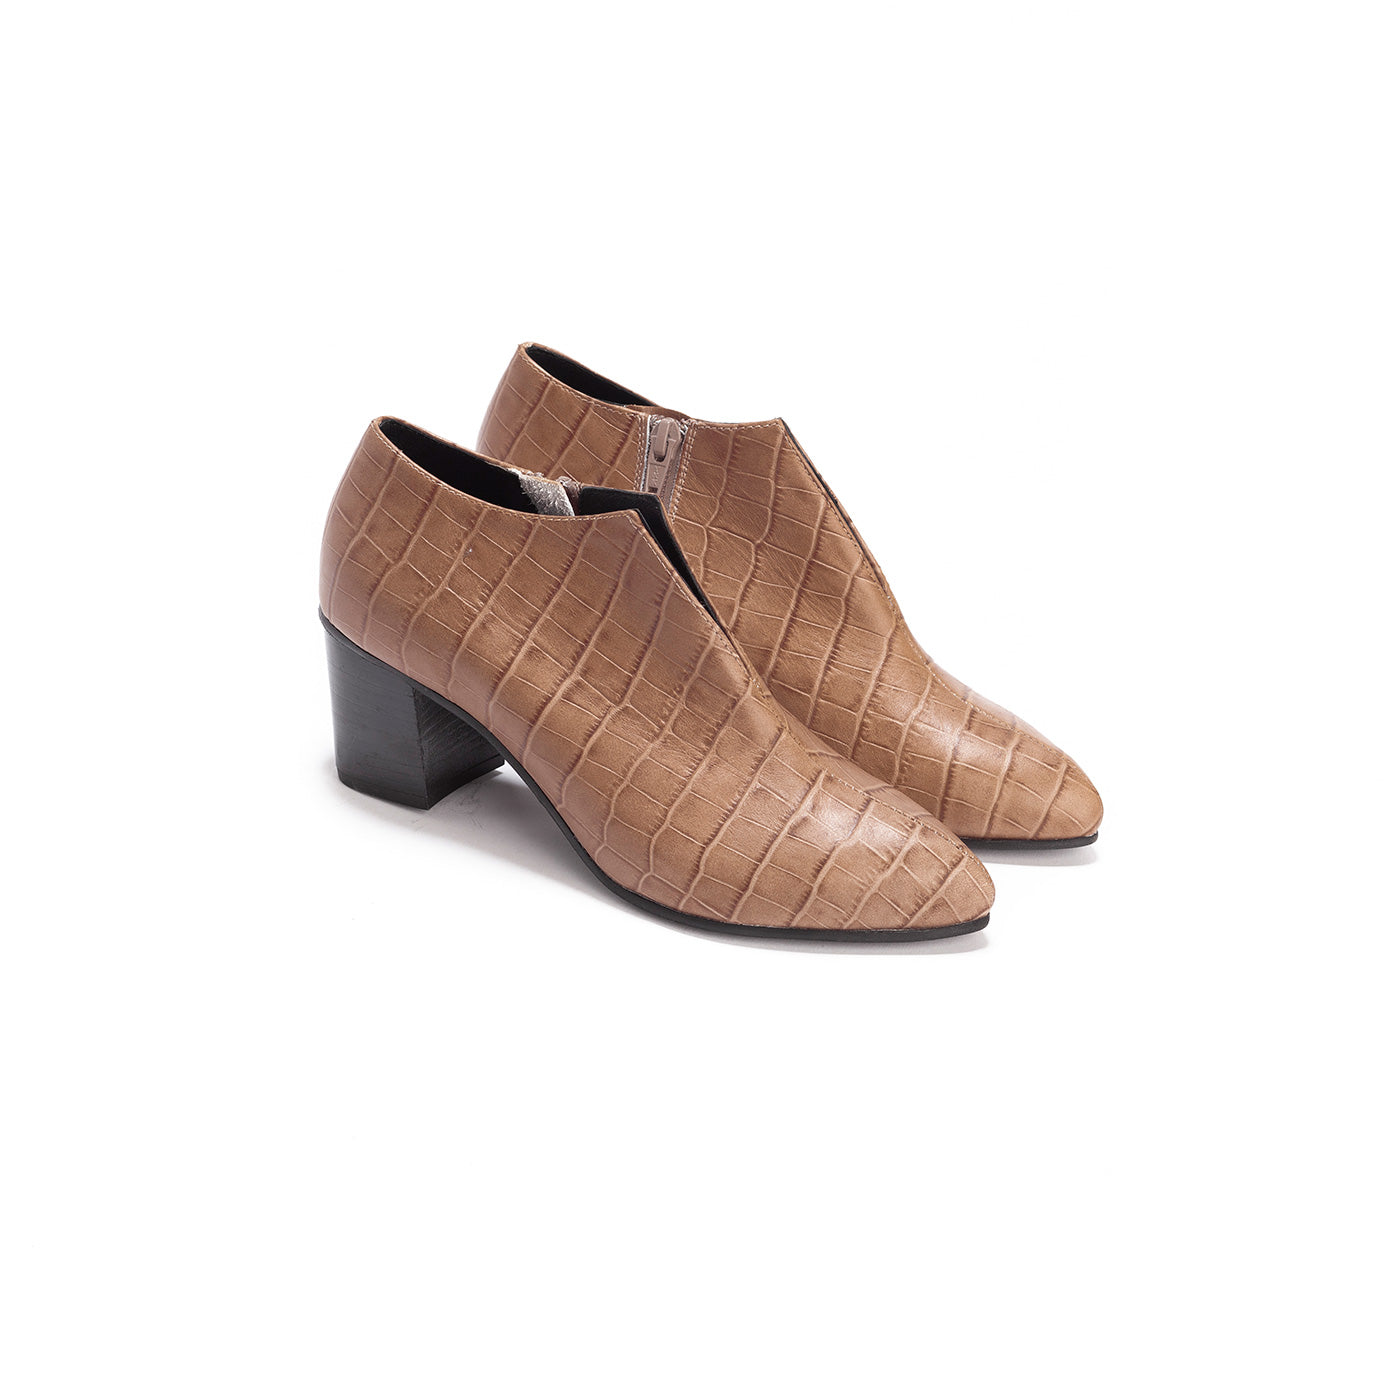 Reese - Block Heel Ankle Boots